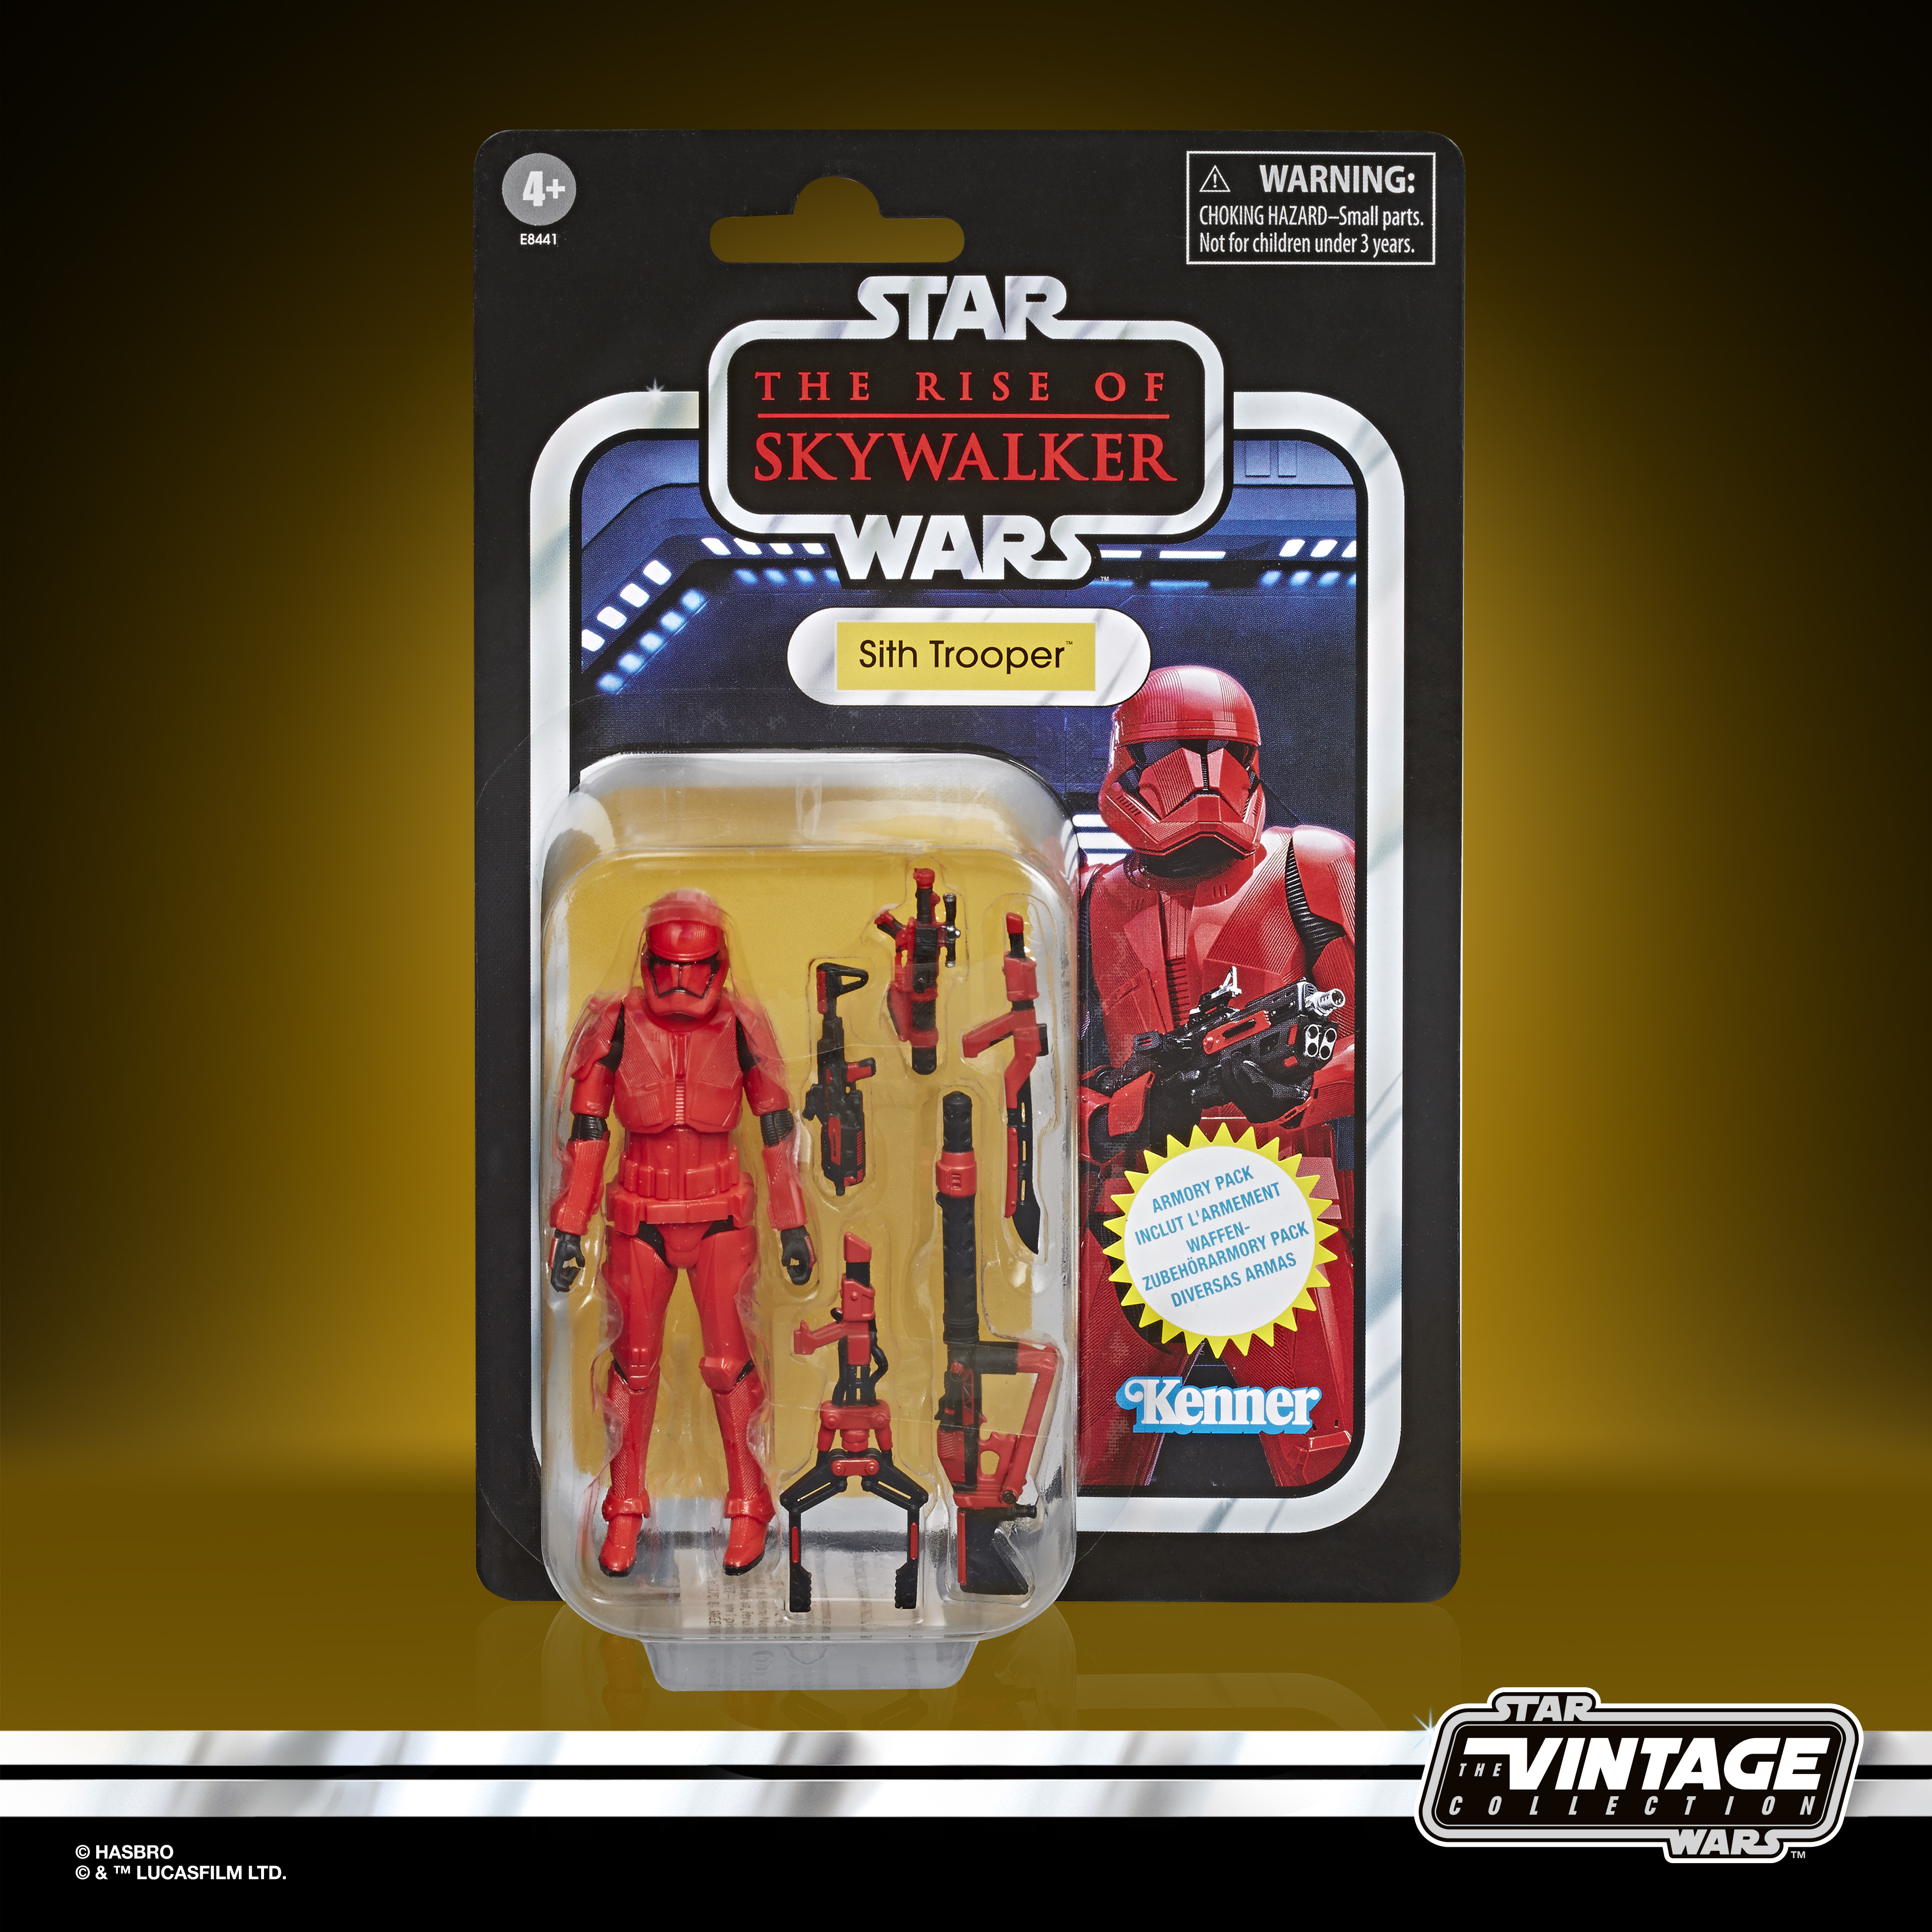 STAR WARS HASBRO SITH TROOPER ARMORY PACK